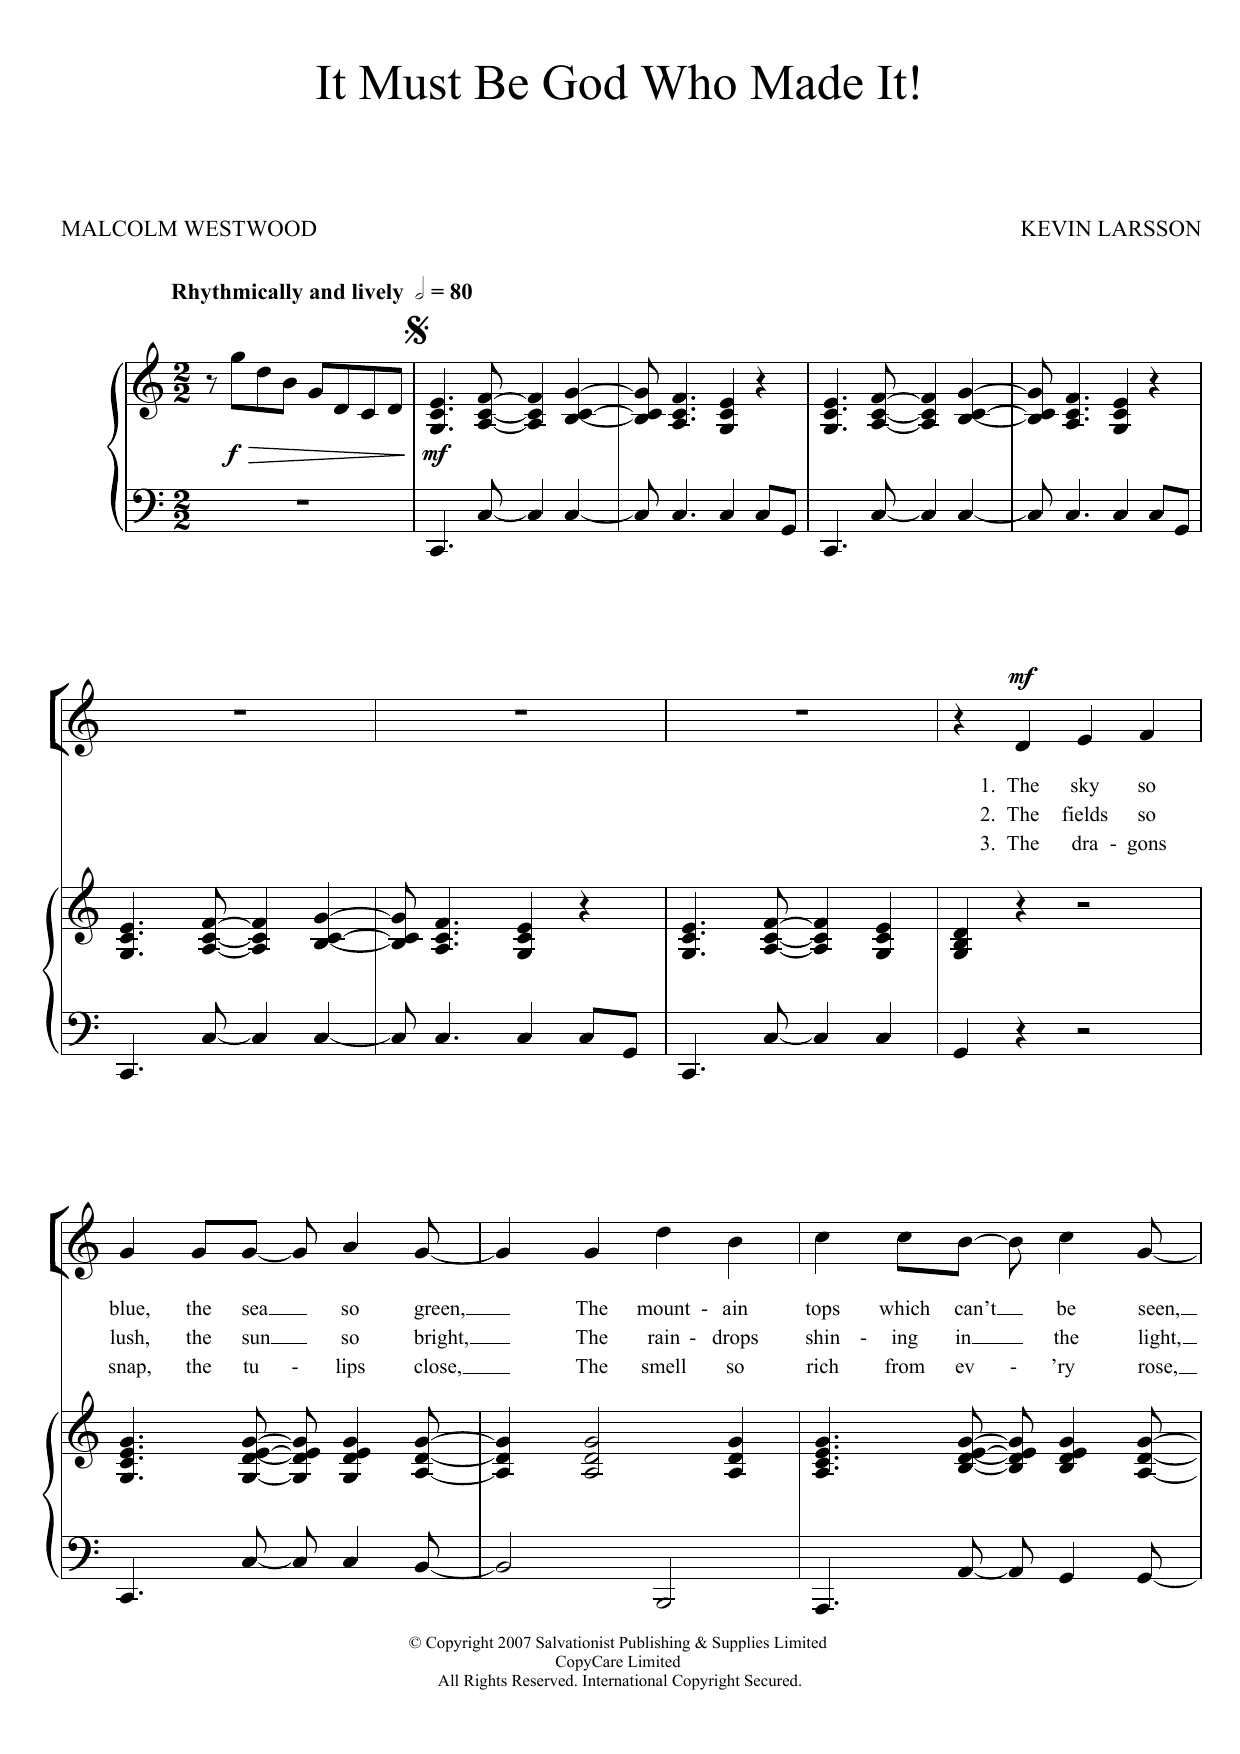 It Must Be God Who Made It Sheet Music